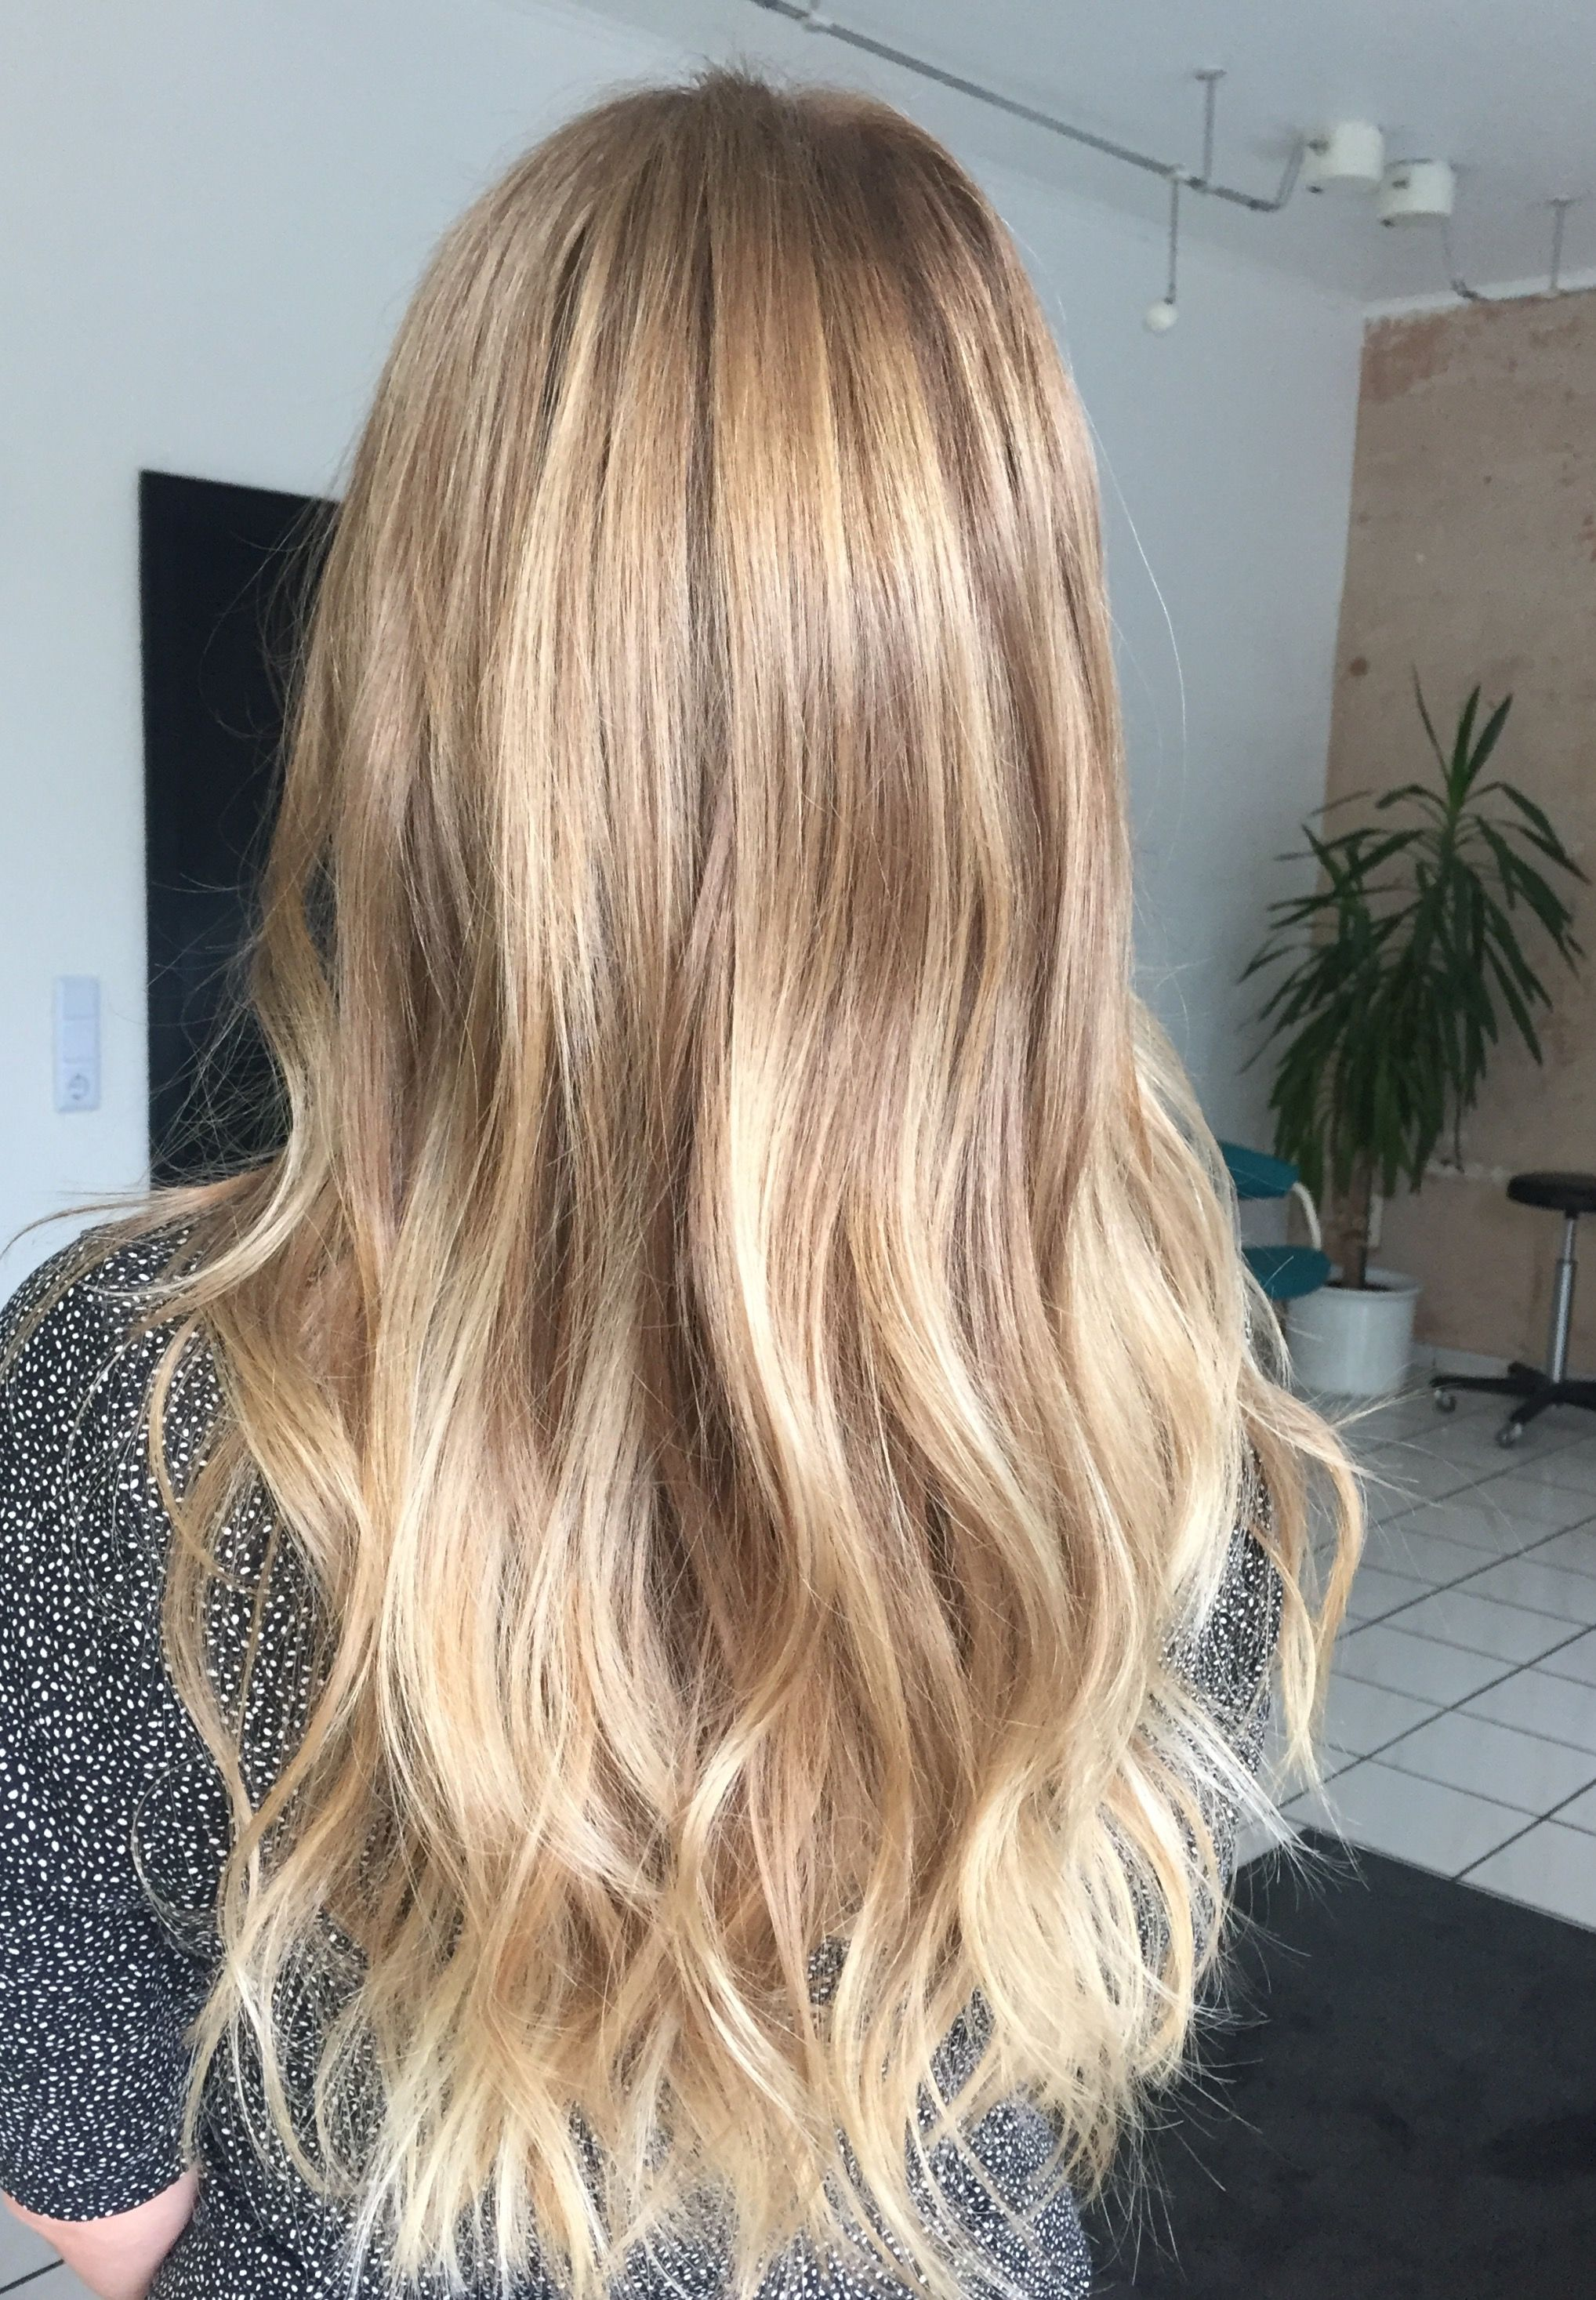 Blonde Hair Waves Balayage Beach Waves Long With Images Beach